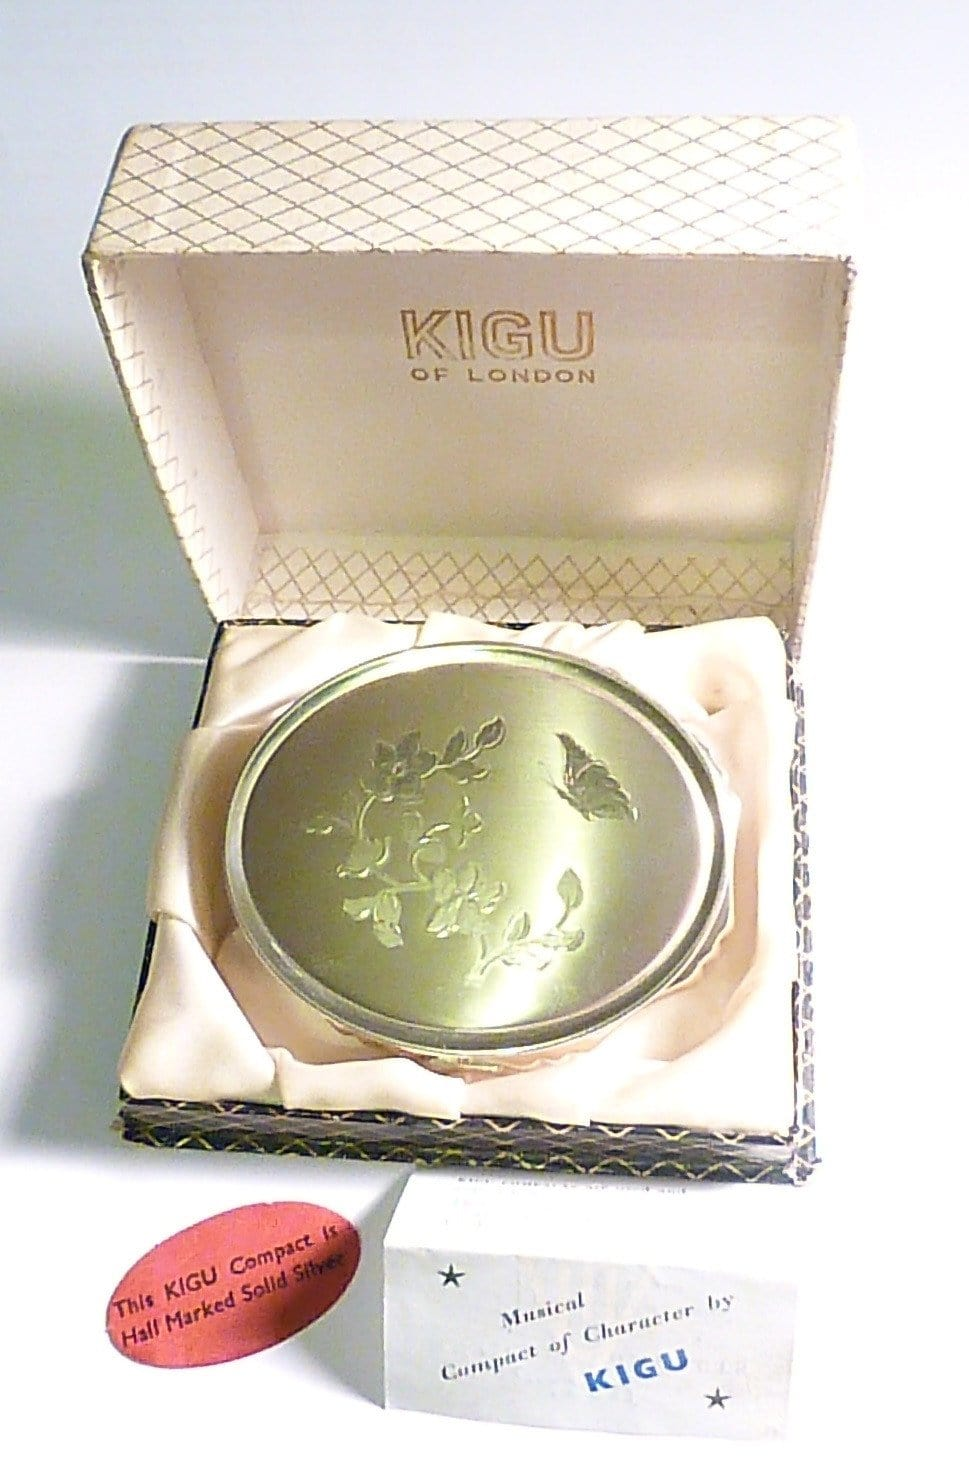 Rare sterling silver musical Kigu powder box / compact 1959 silver wedding anniversary gifts for her - The Vintage Compact Shop